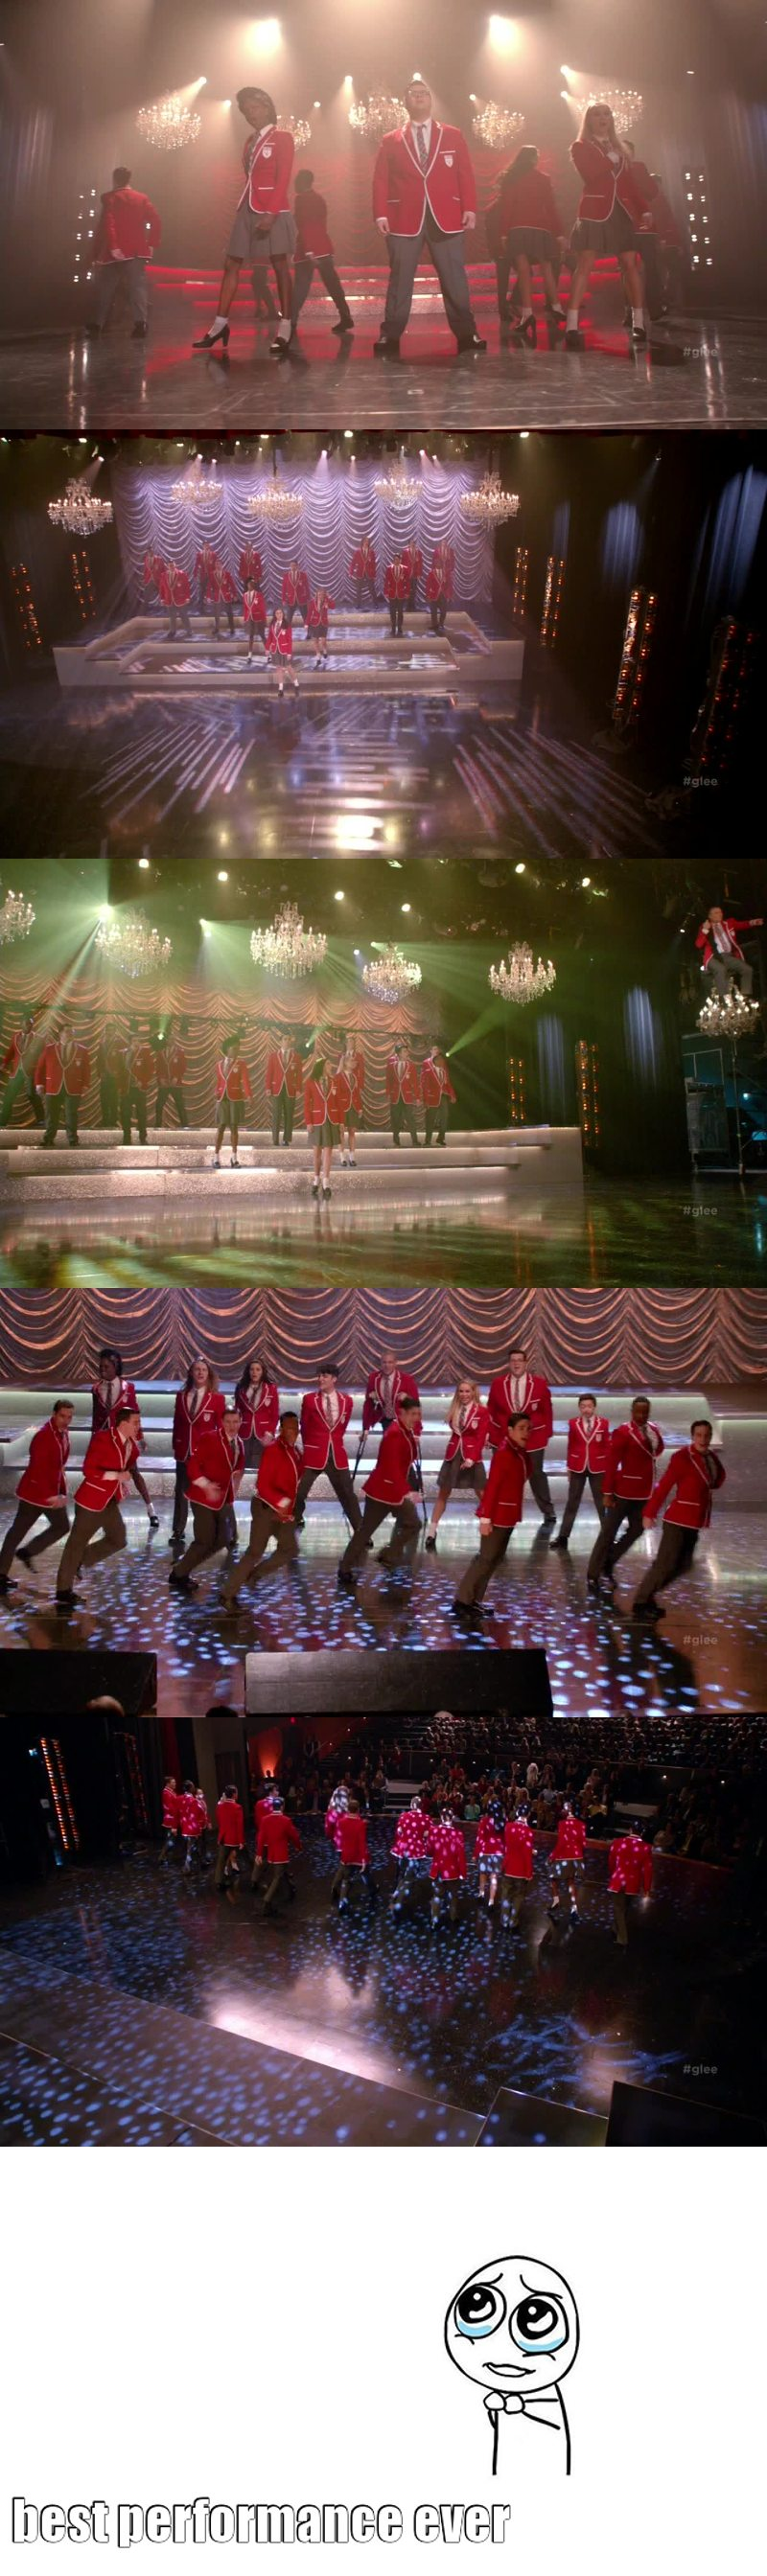 Honestly, I think it was the best song setlist and performance they did... I really adore glee, this show will stay in my heart forever ❤️